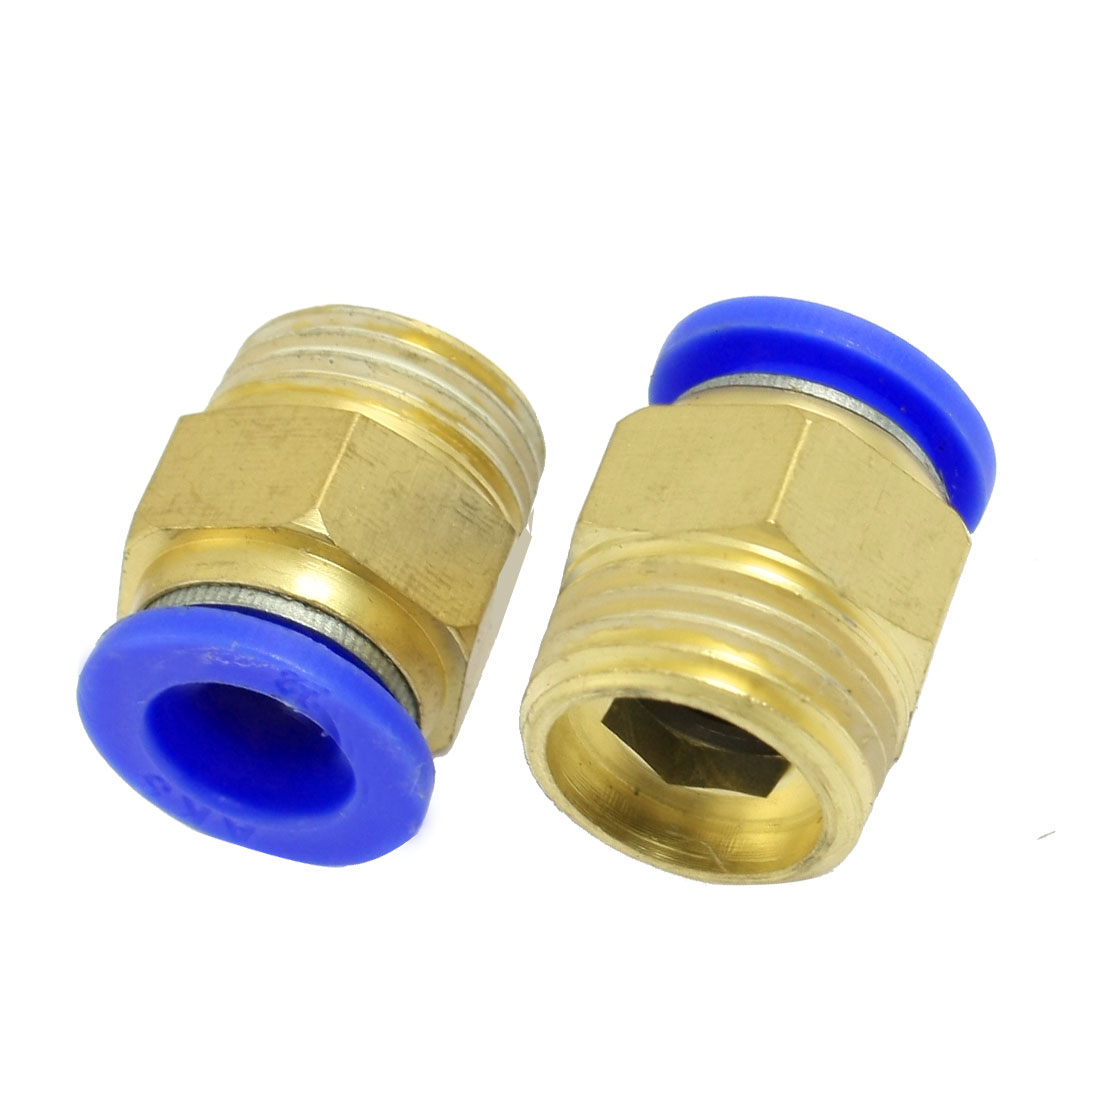 "12mm Tube Pneumatic Straight Quick Coupling 1/2"" Thread Brass Connector 2 Pcs"